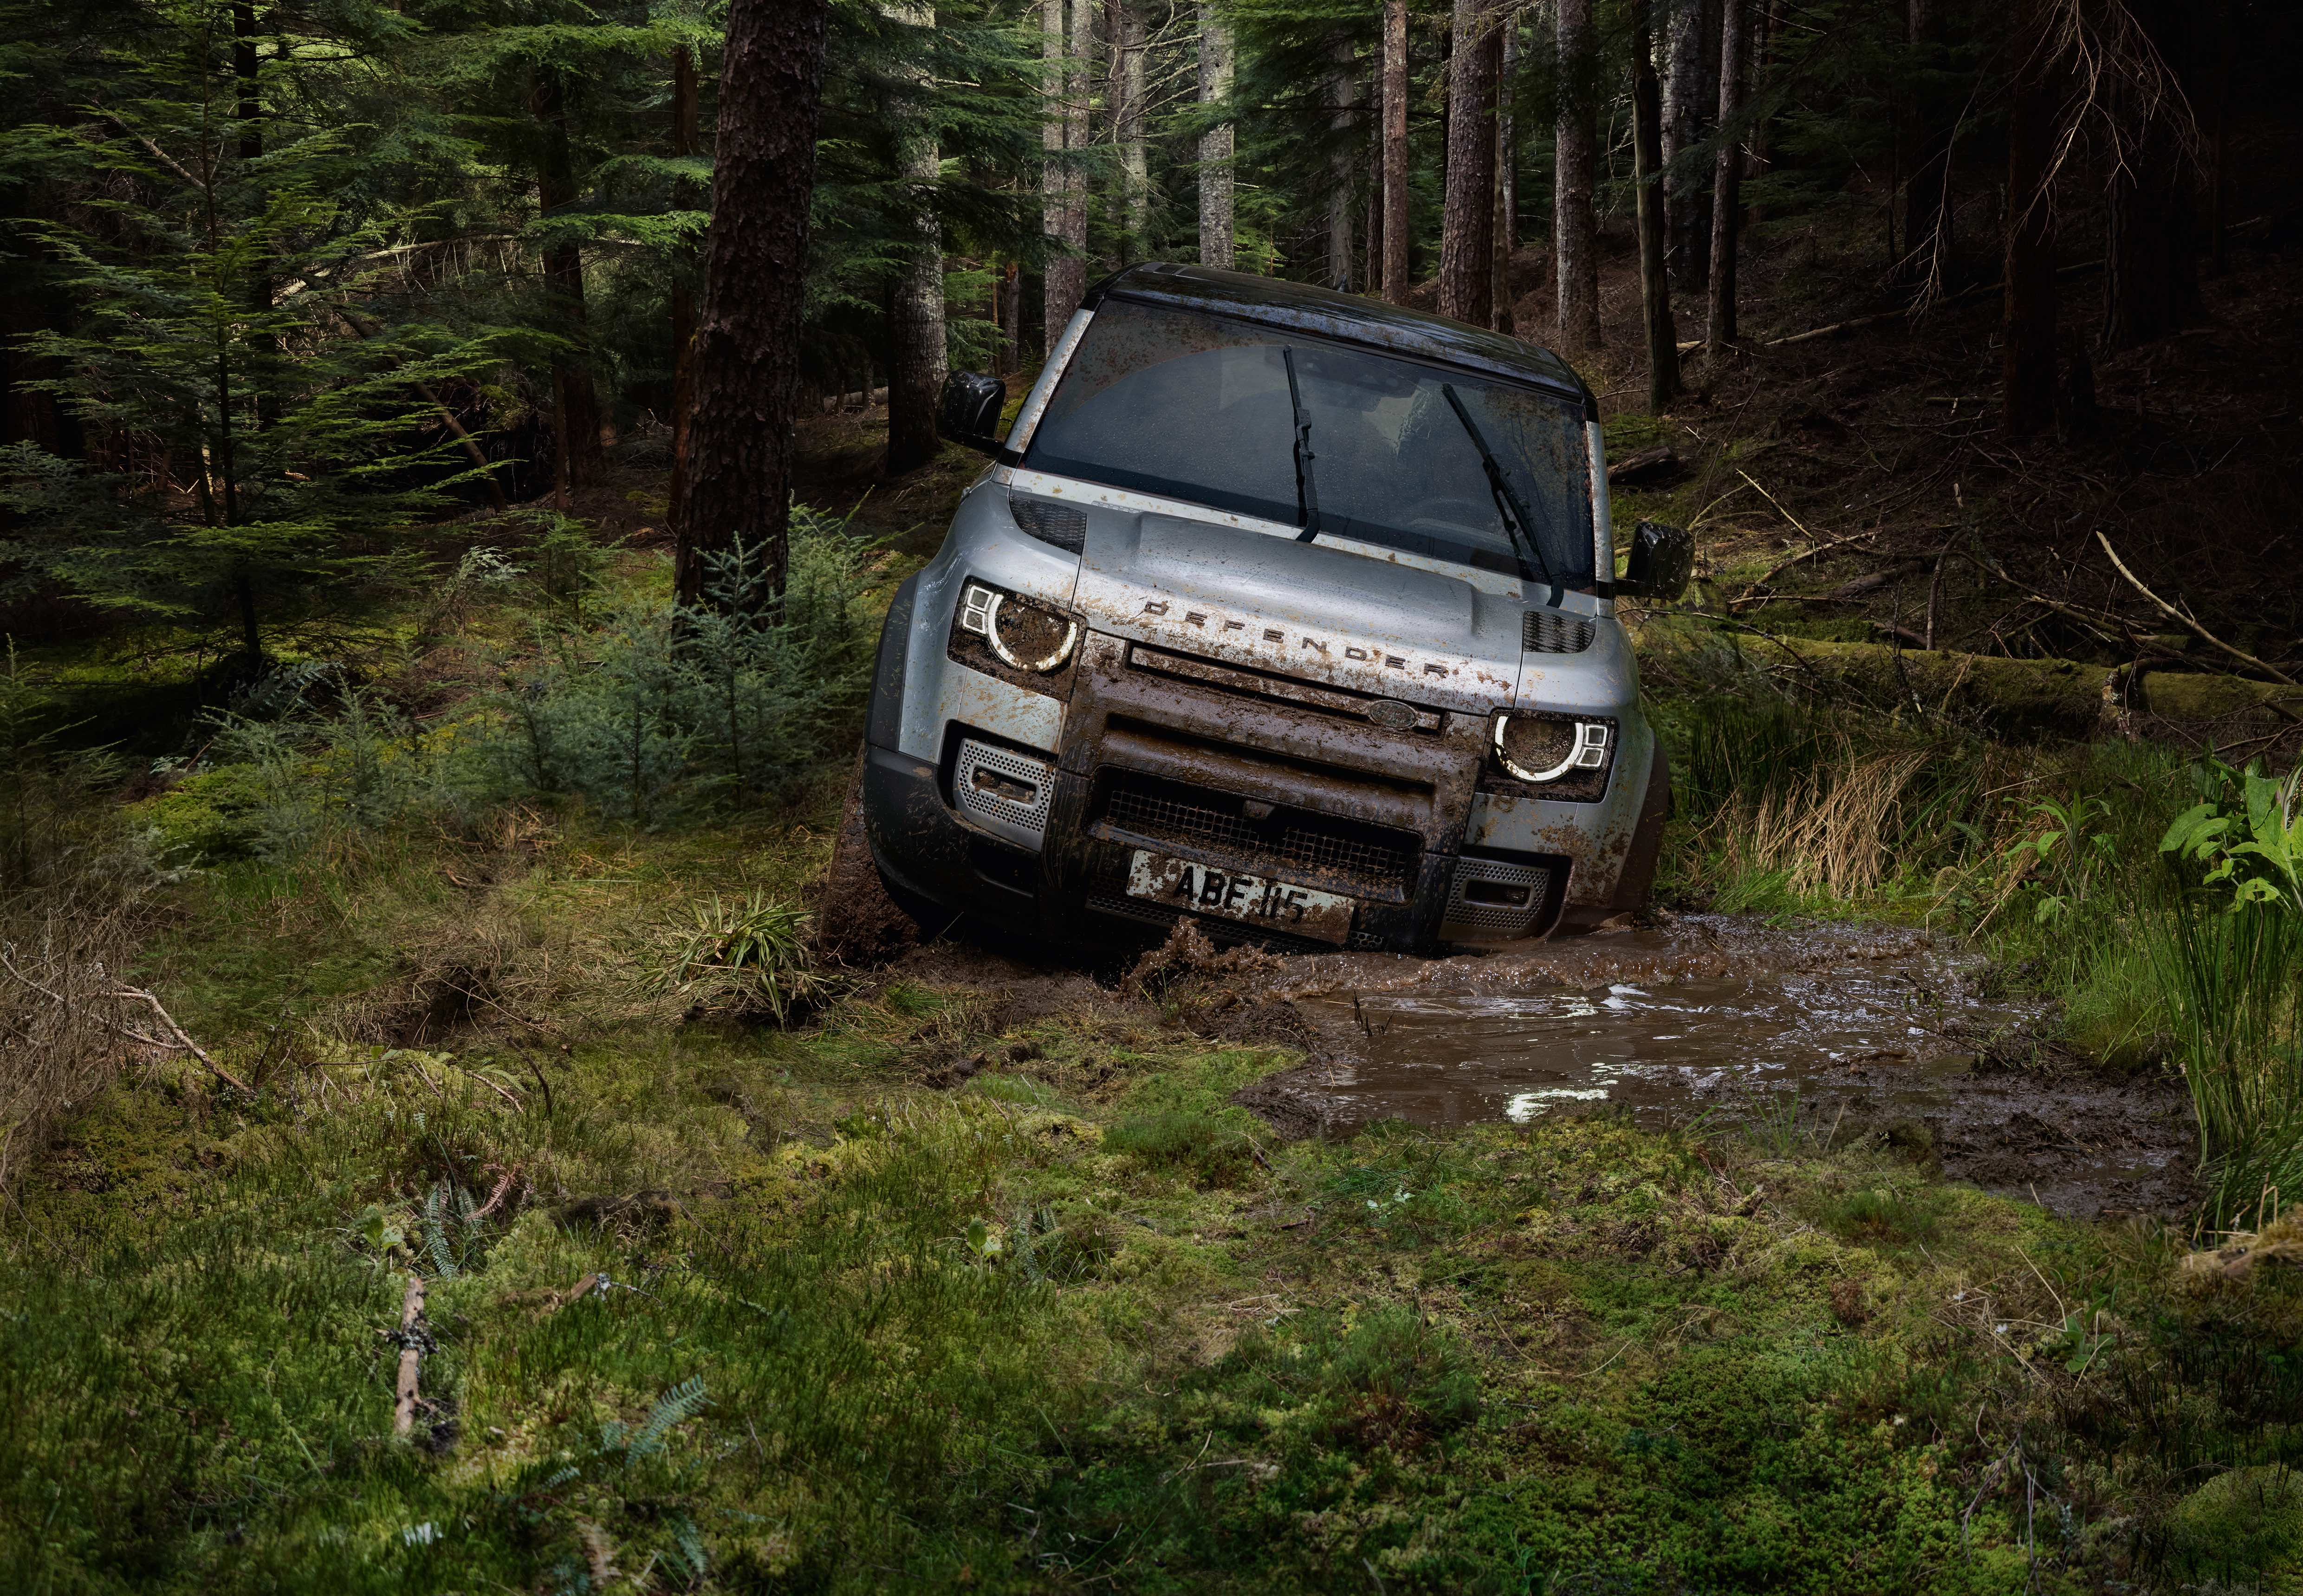 Land Rover Defender 2020 Images specs price and UK release 4961x3439